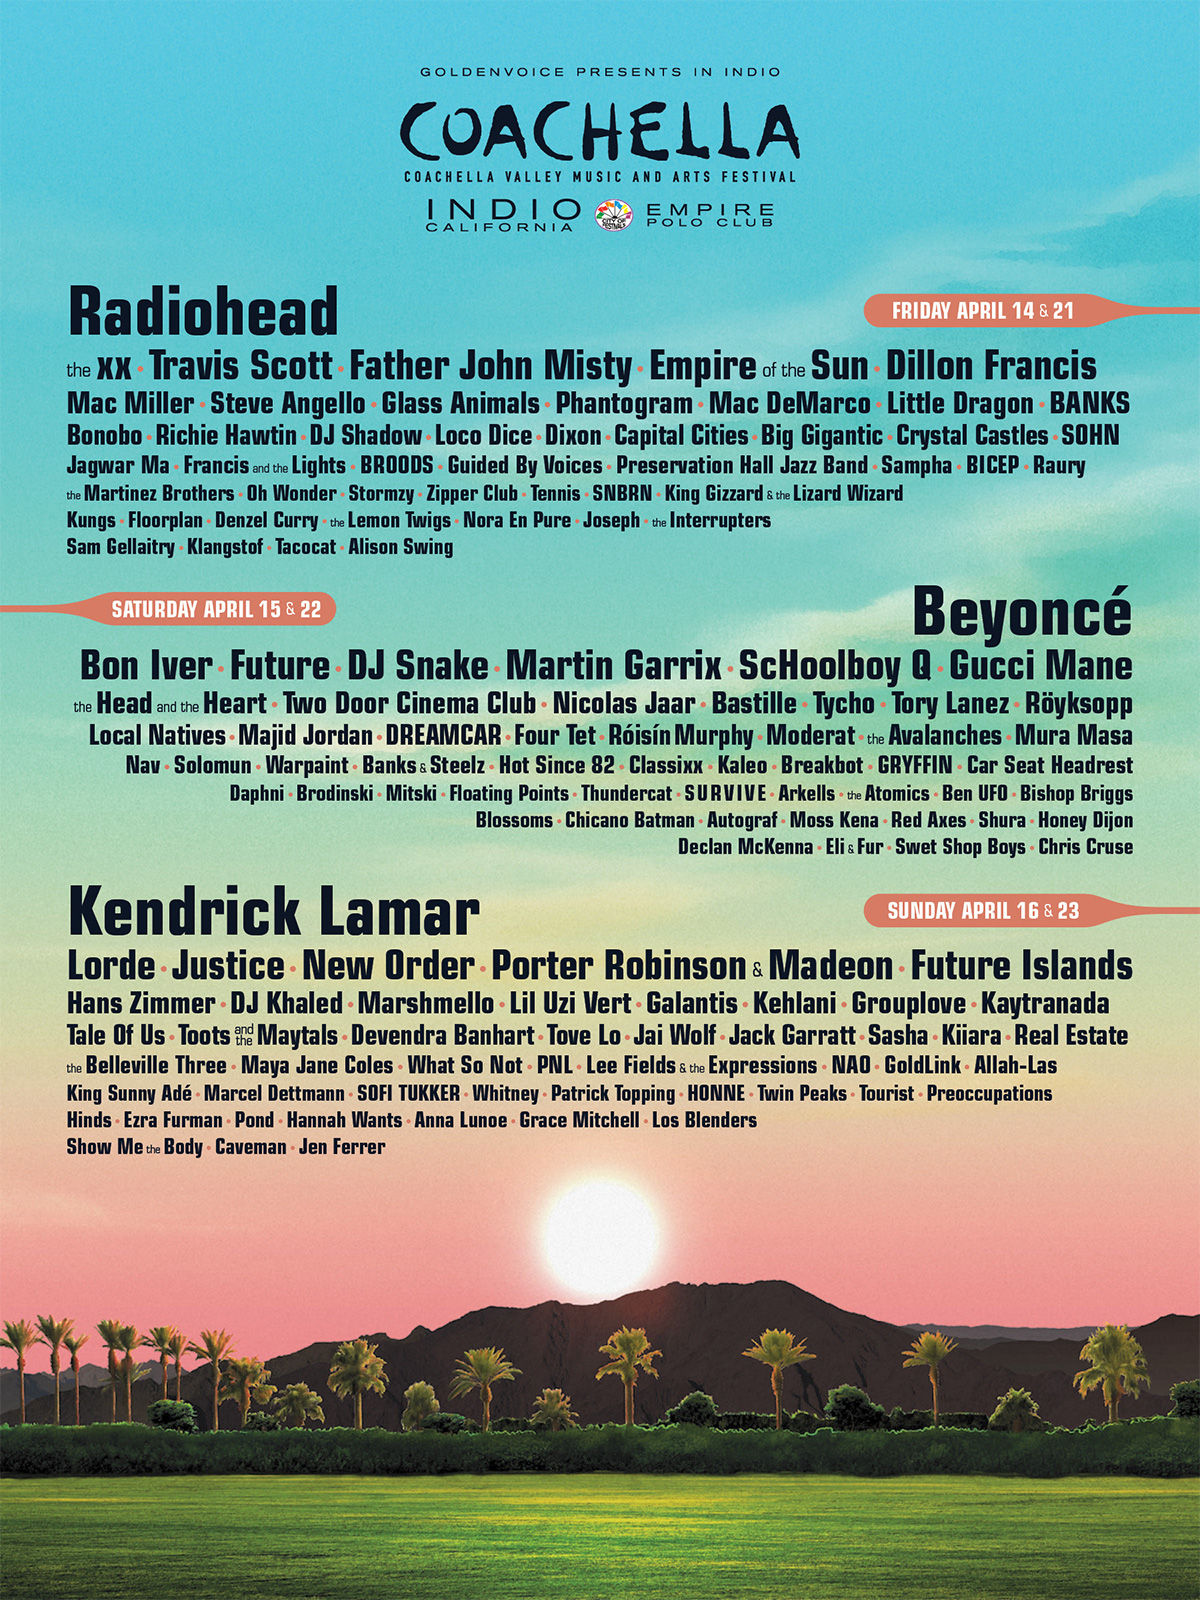 Coachella lineup 2017 flyer